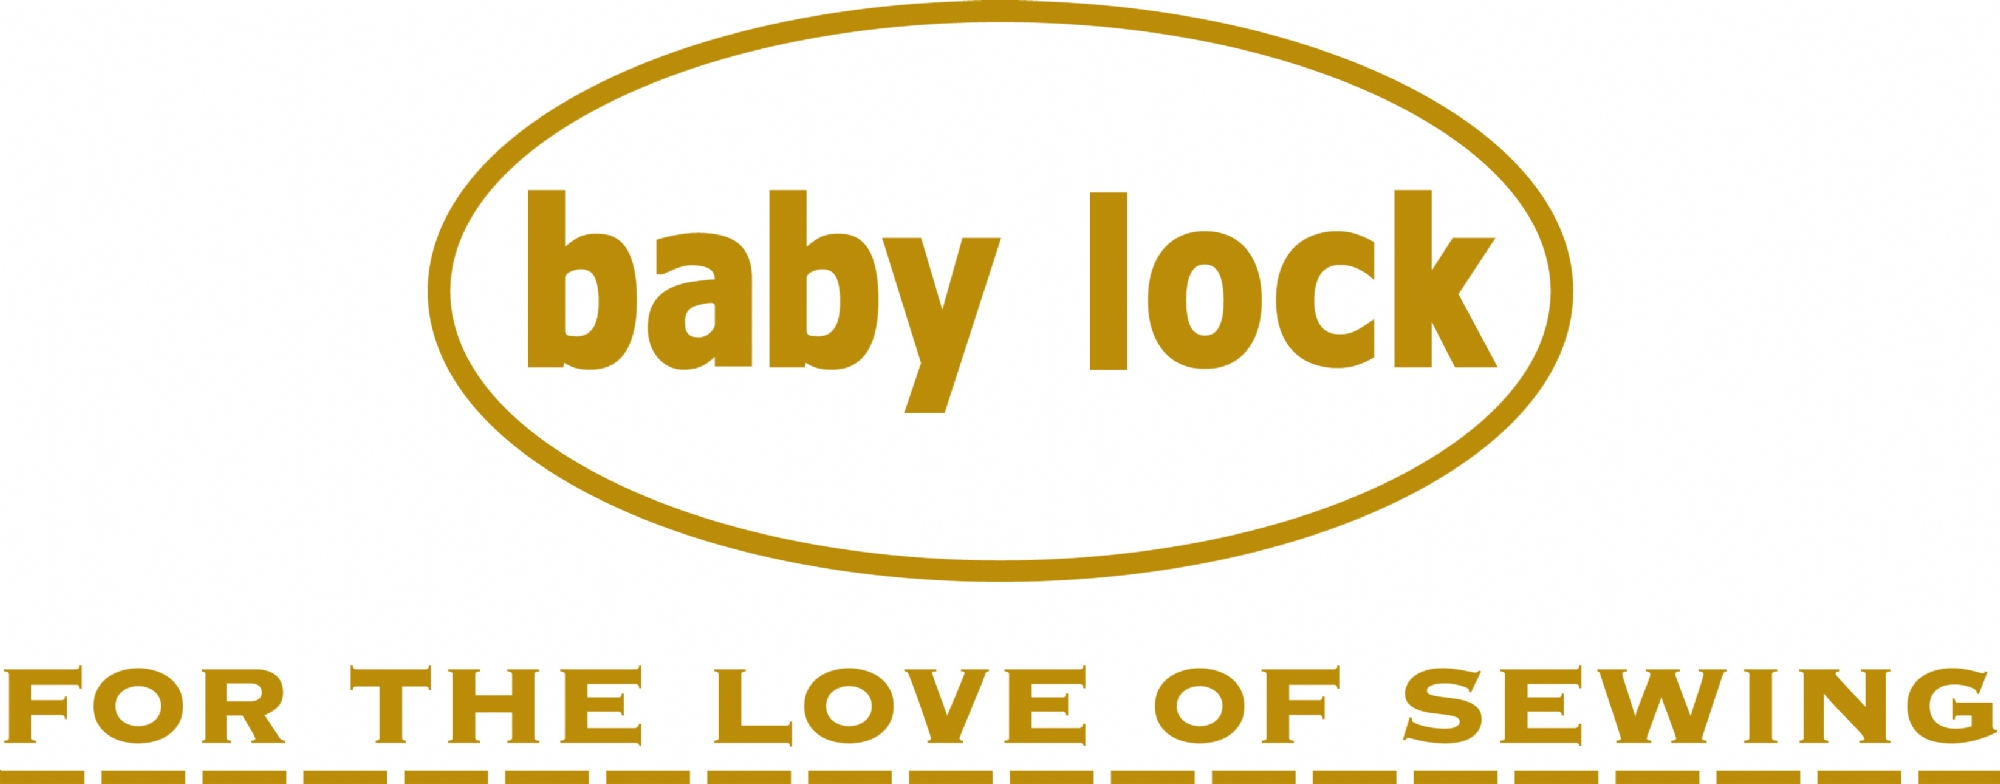 Baby Lock - Cover Stitch 2